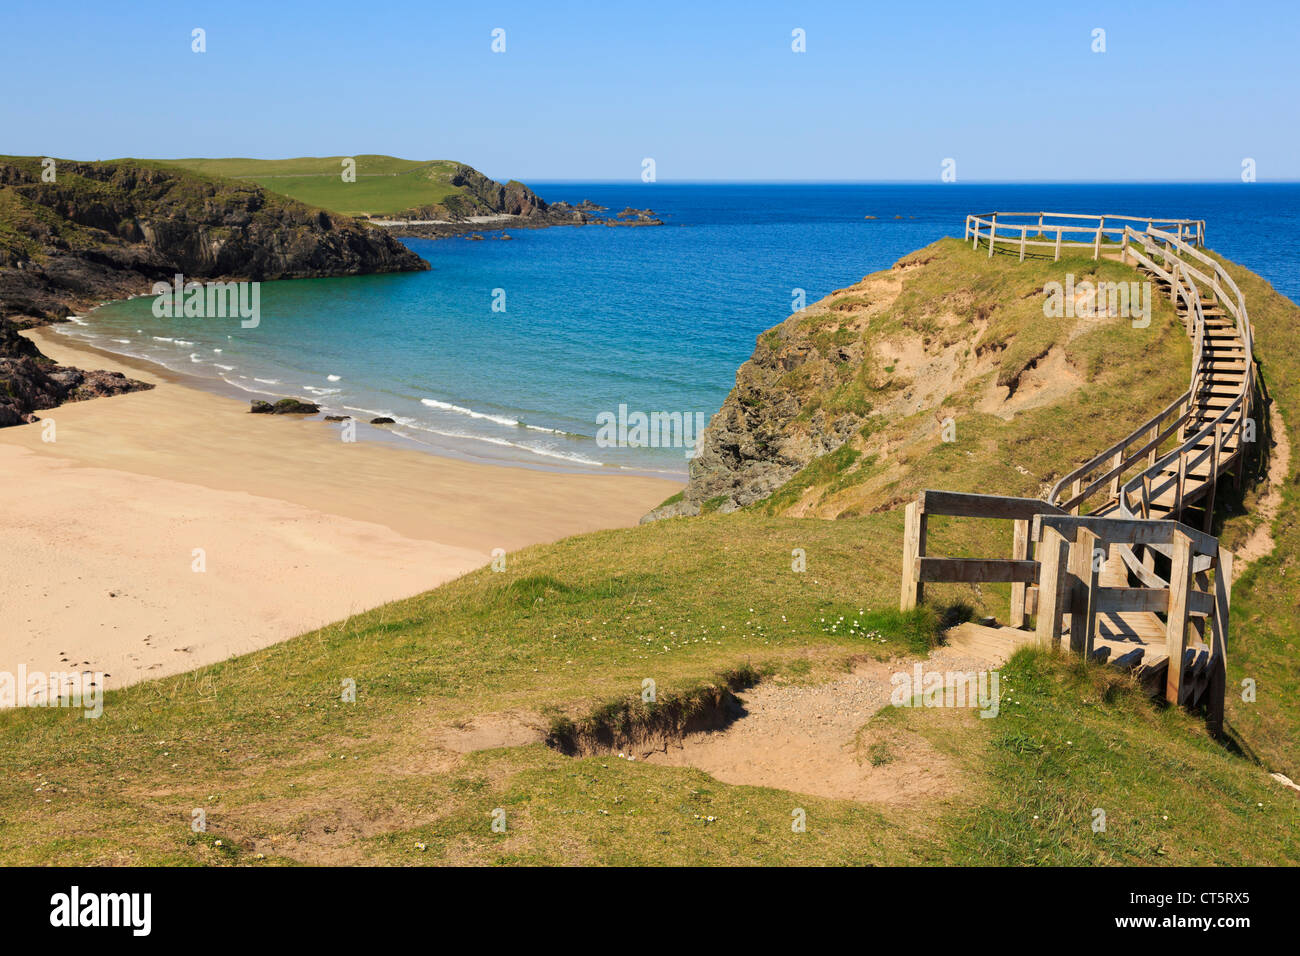 Wooden steps to viewpoint overlooking sandy beach and blue sea on scenic Scottish north coast 500 route at Sango - Stock Image